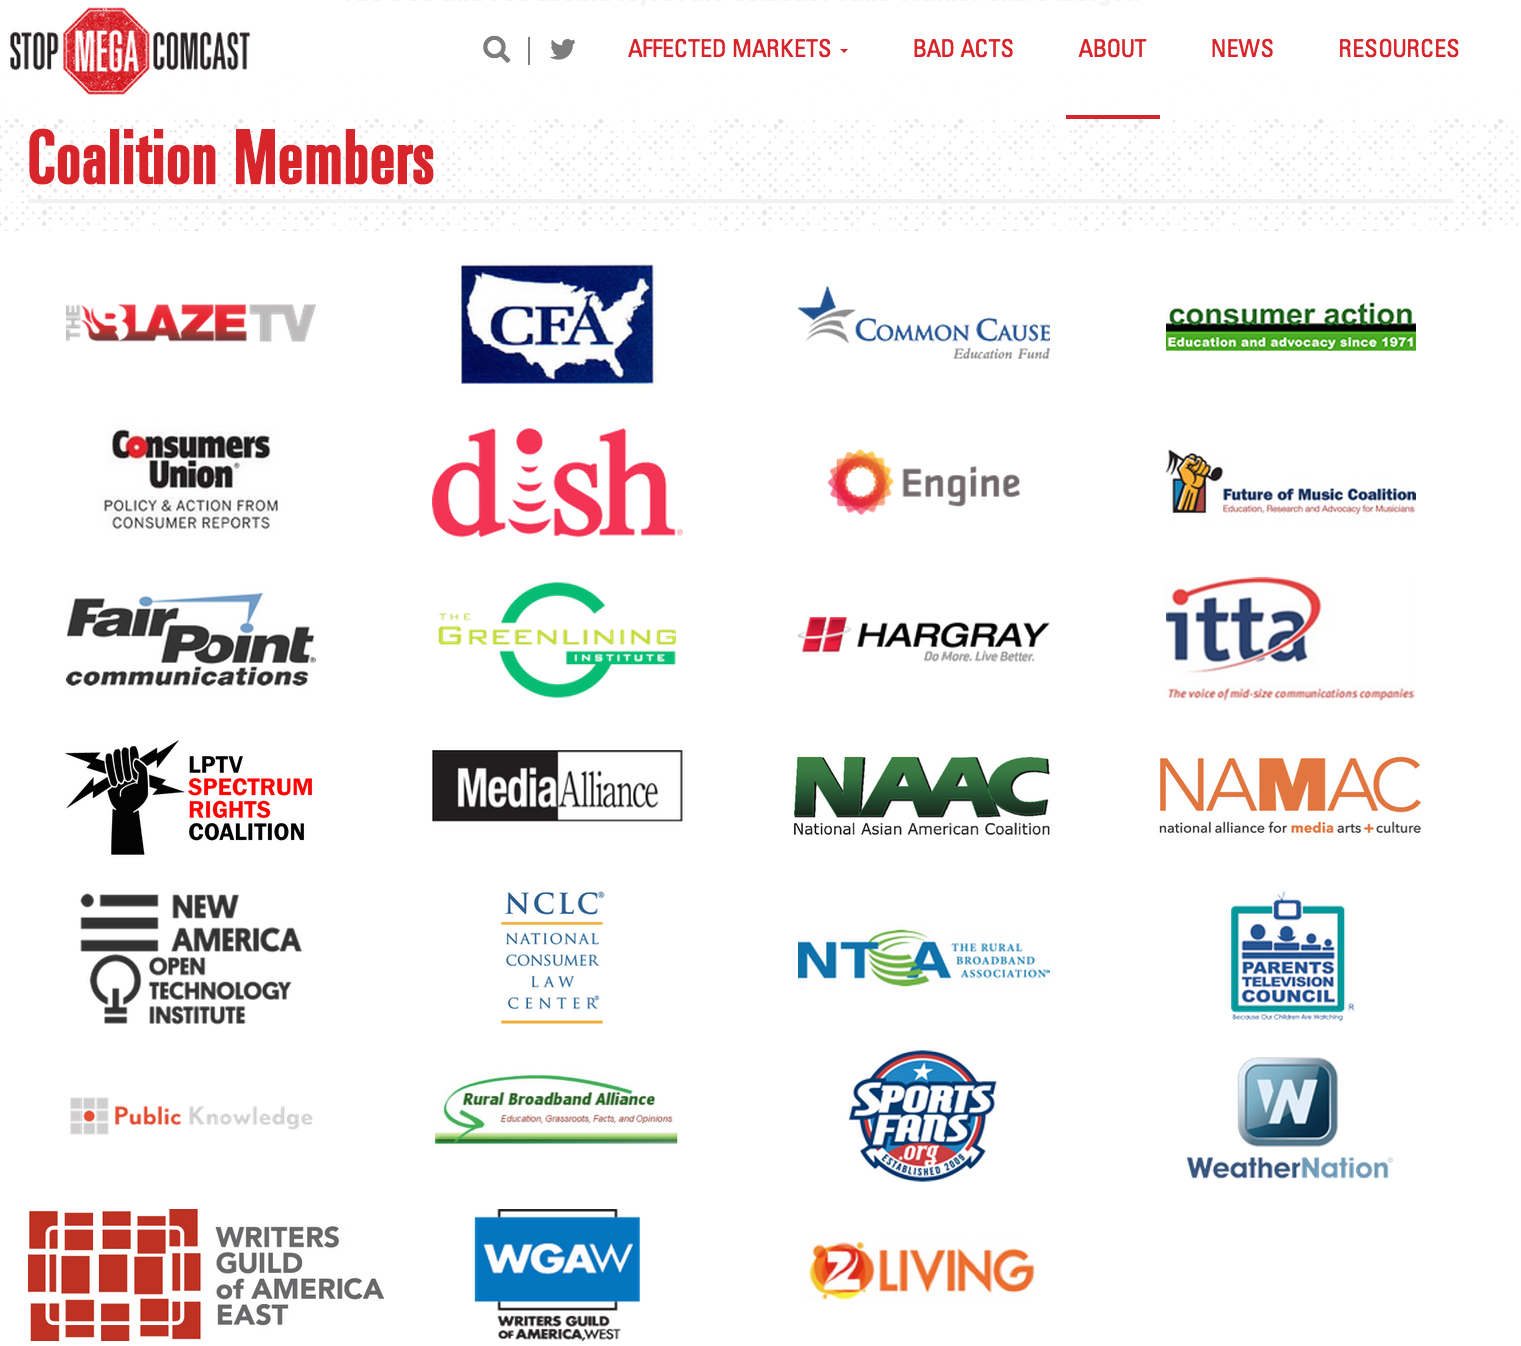 The current slate of groups involved in the Stop Mega Comcast Coalition.